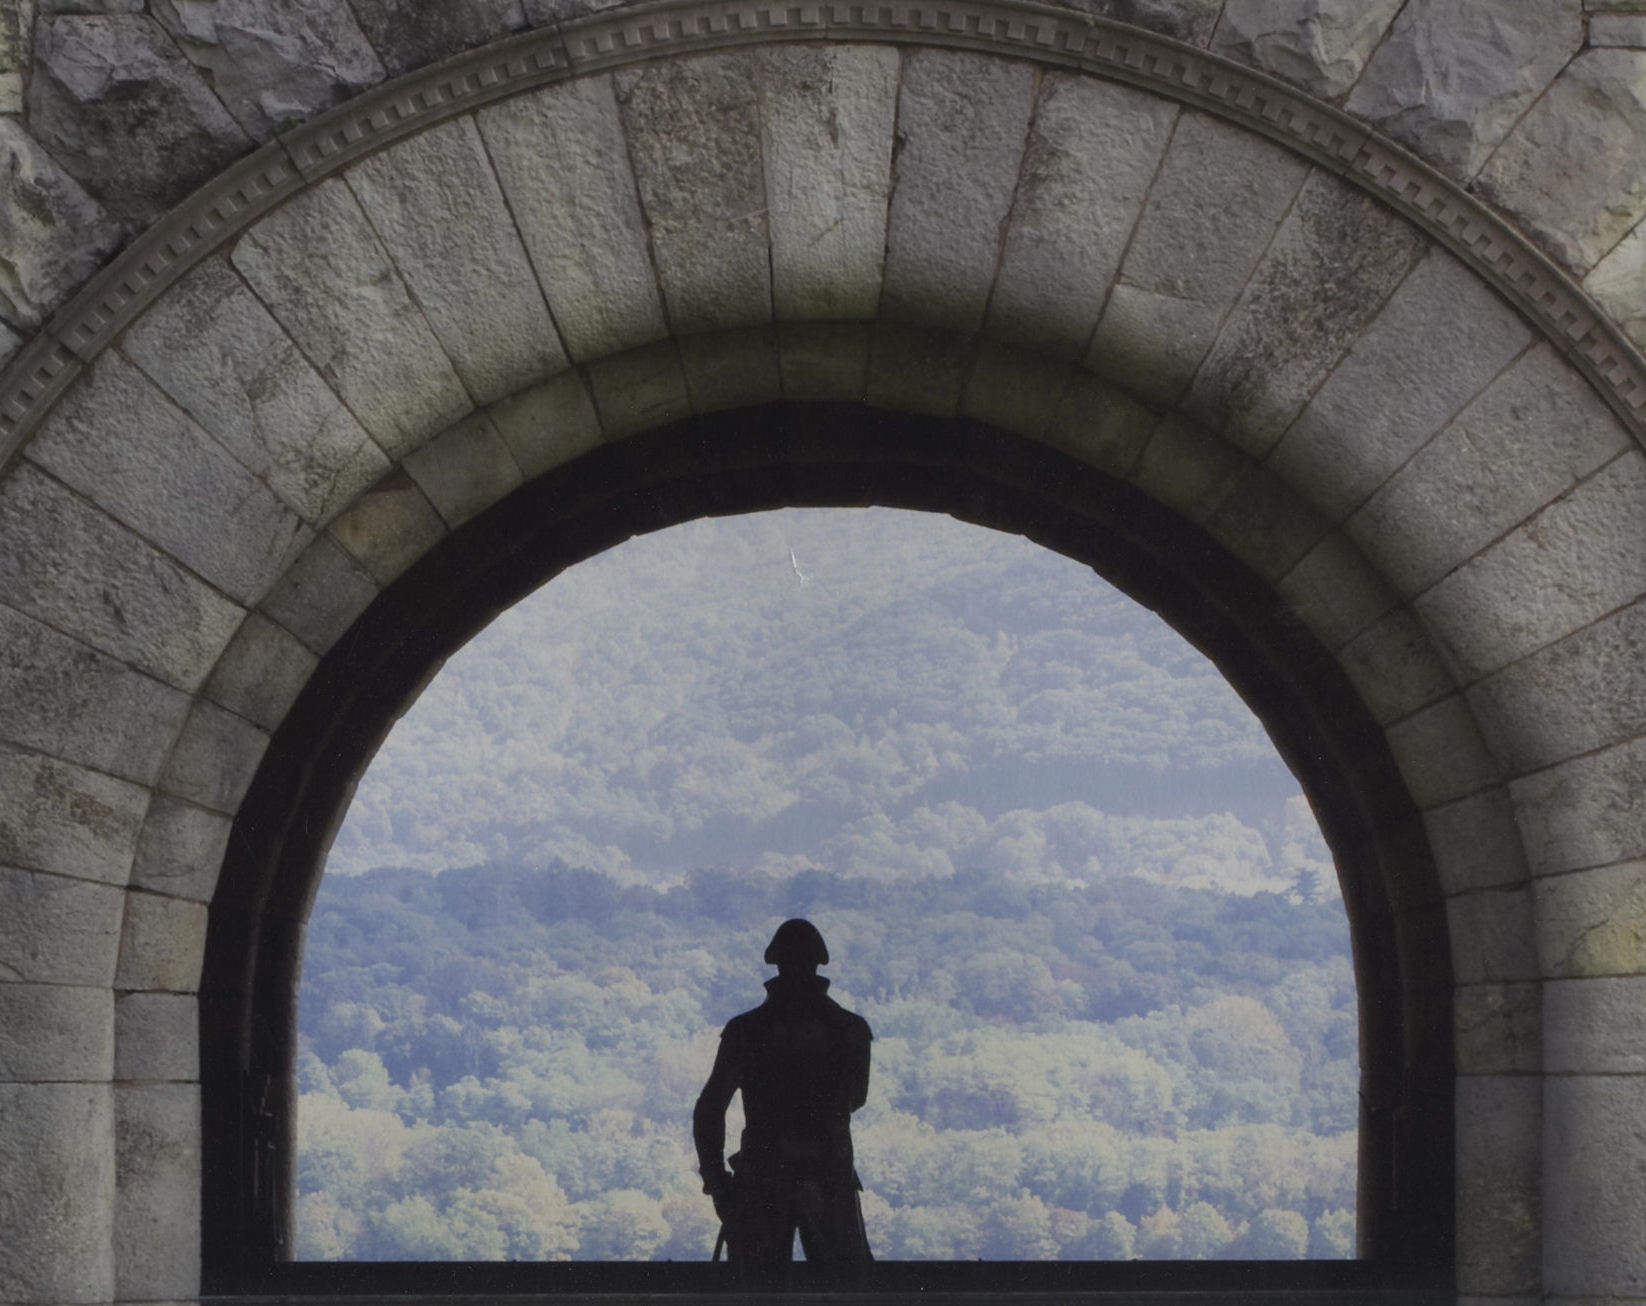 "A View with George - A wonder in Newburgh, NY.The Need: The Tower of Victory was damaged by hurricane winds in the 1950's. This rare centennial monument was in need of help, including a new roof.What Happened Next: The ""Save the Tower"" campaign launched to restore this important monument honoring peace. Hundreds of contributors provided more than $1M in funding.Our Outcome: Today you can visit the nation's first historic site and enjoy amazing vistas from the Tower's restored belvedere."